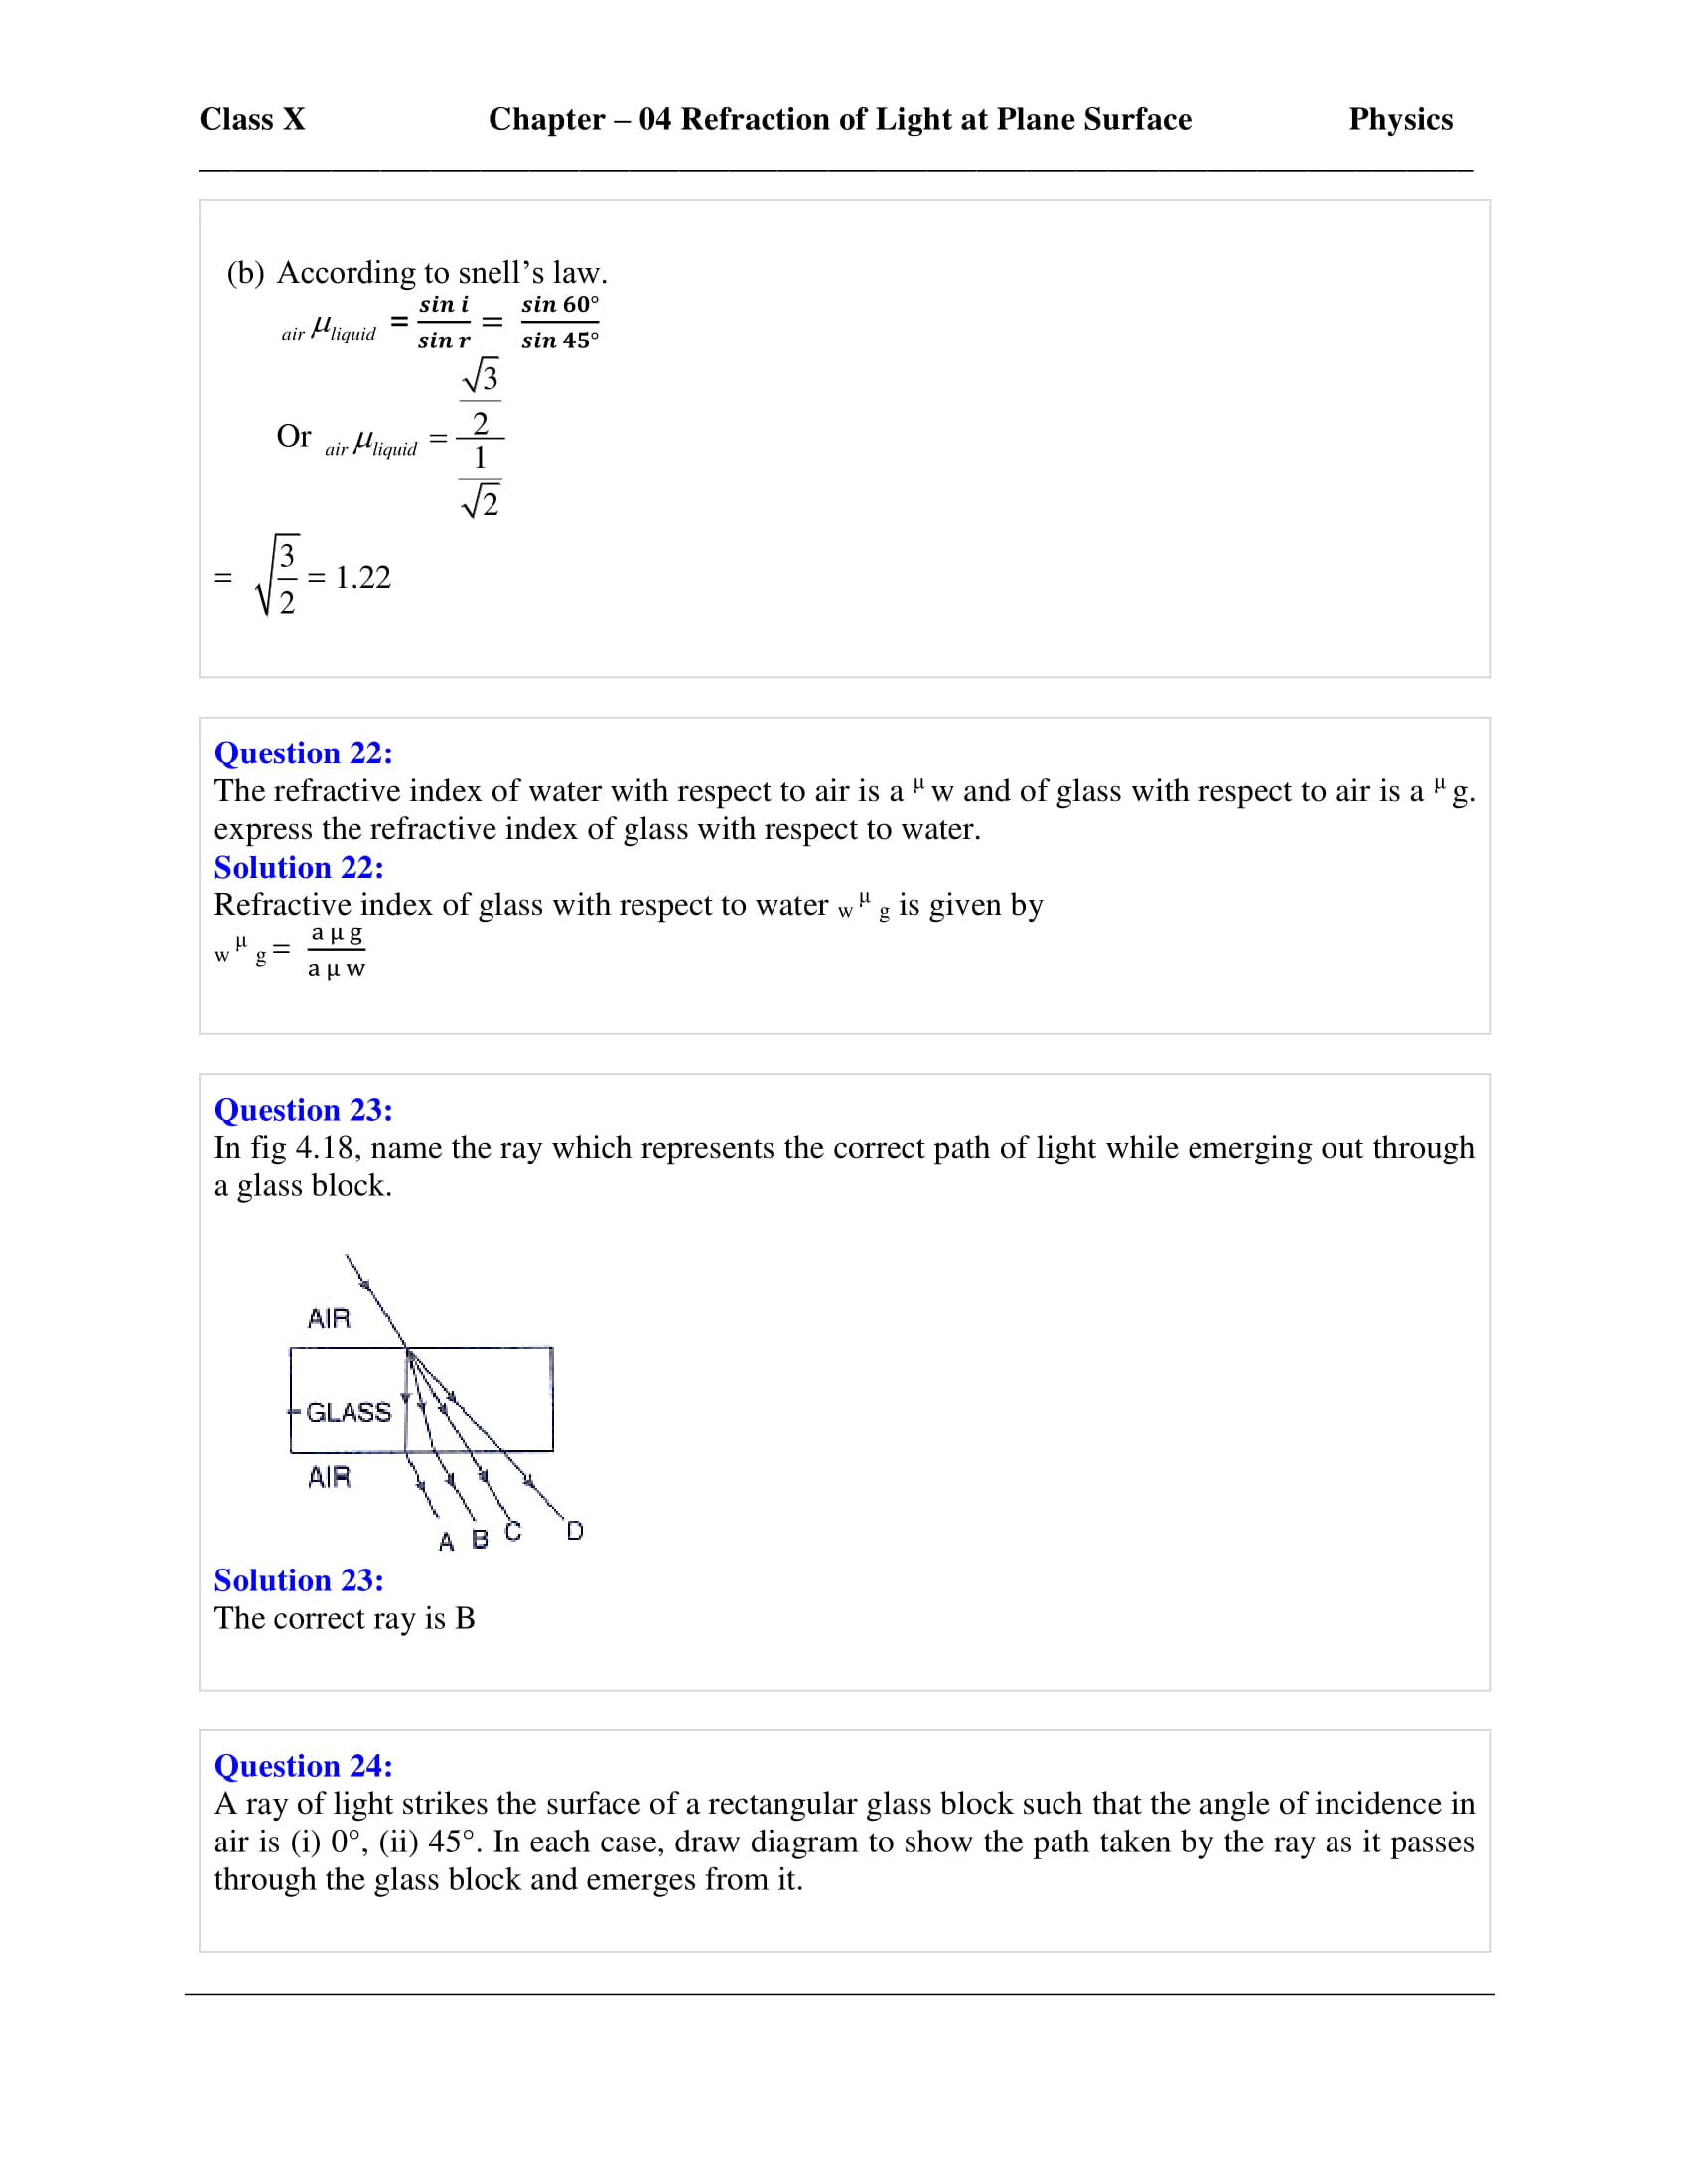 icse-selina-physics-solutions-class-10-chapter-4-refraction-of-light-at-plane-surfaces-07